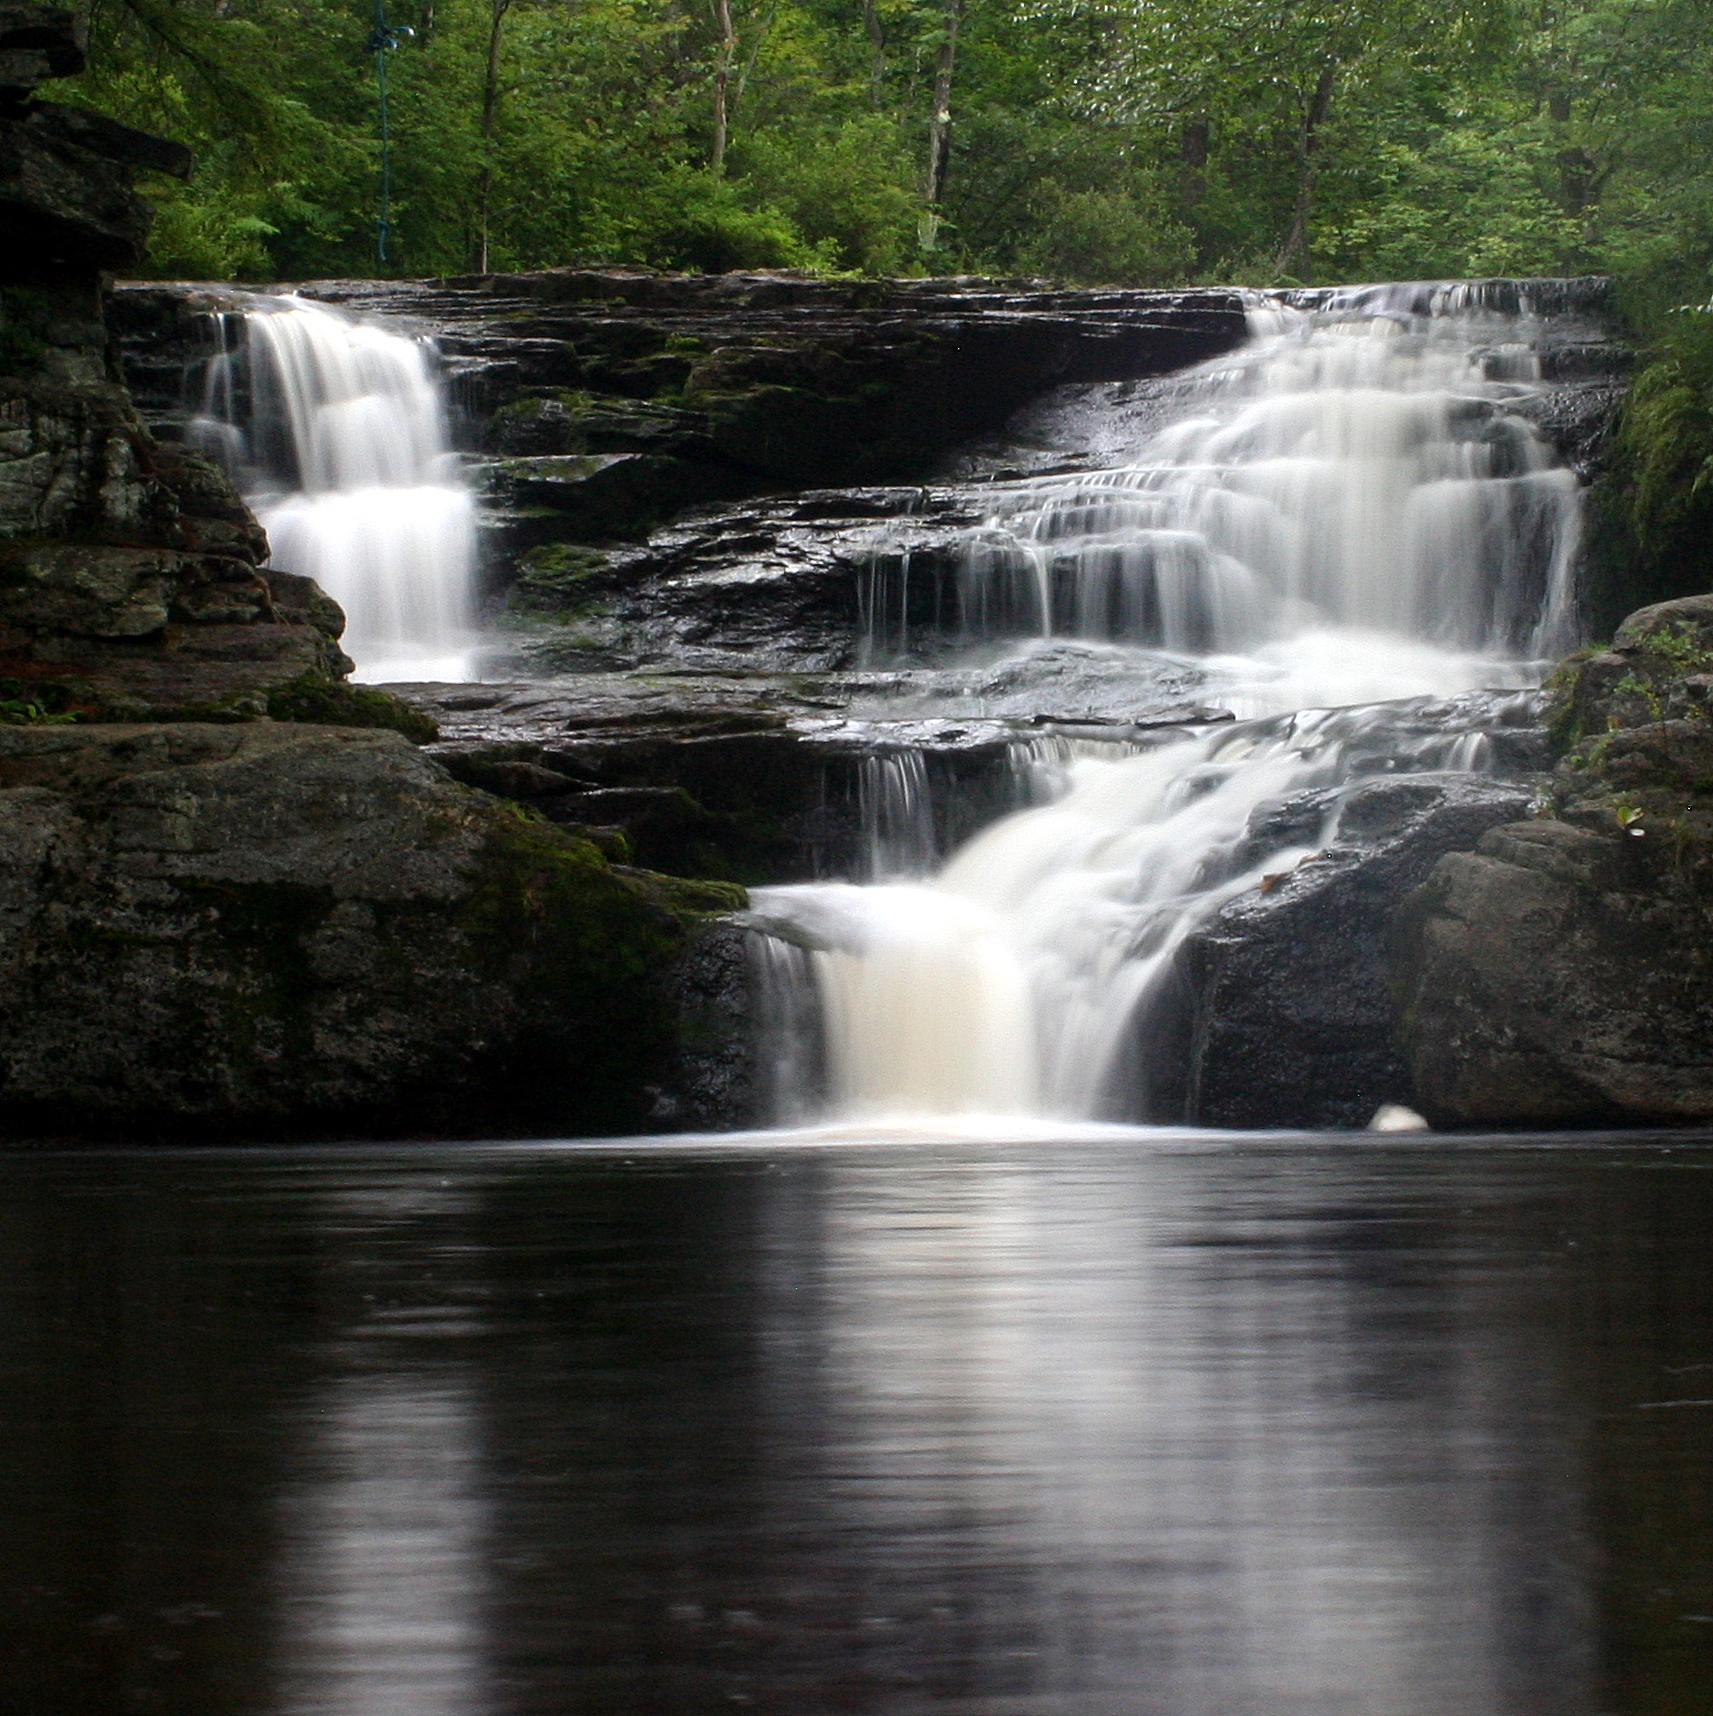 Swimming Holes | Bill Deaton